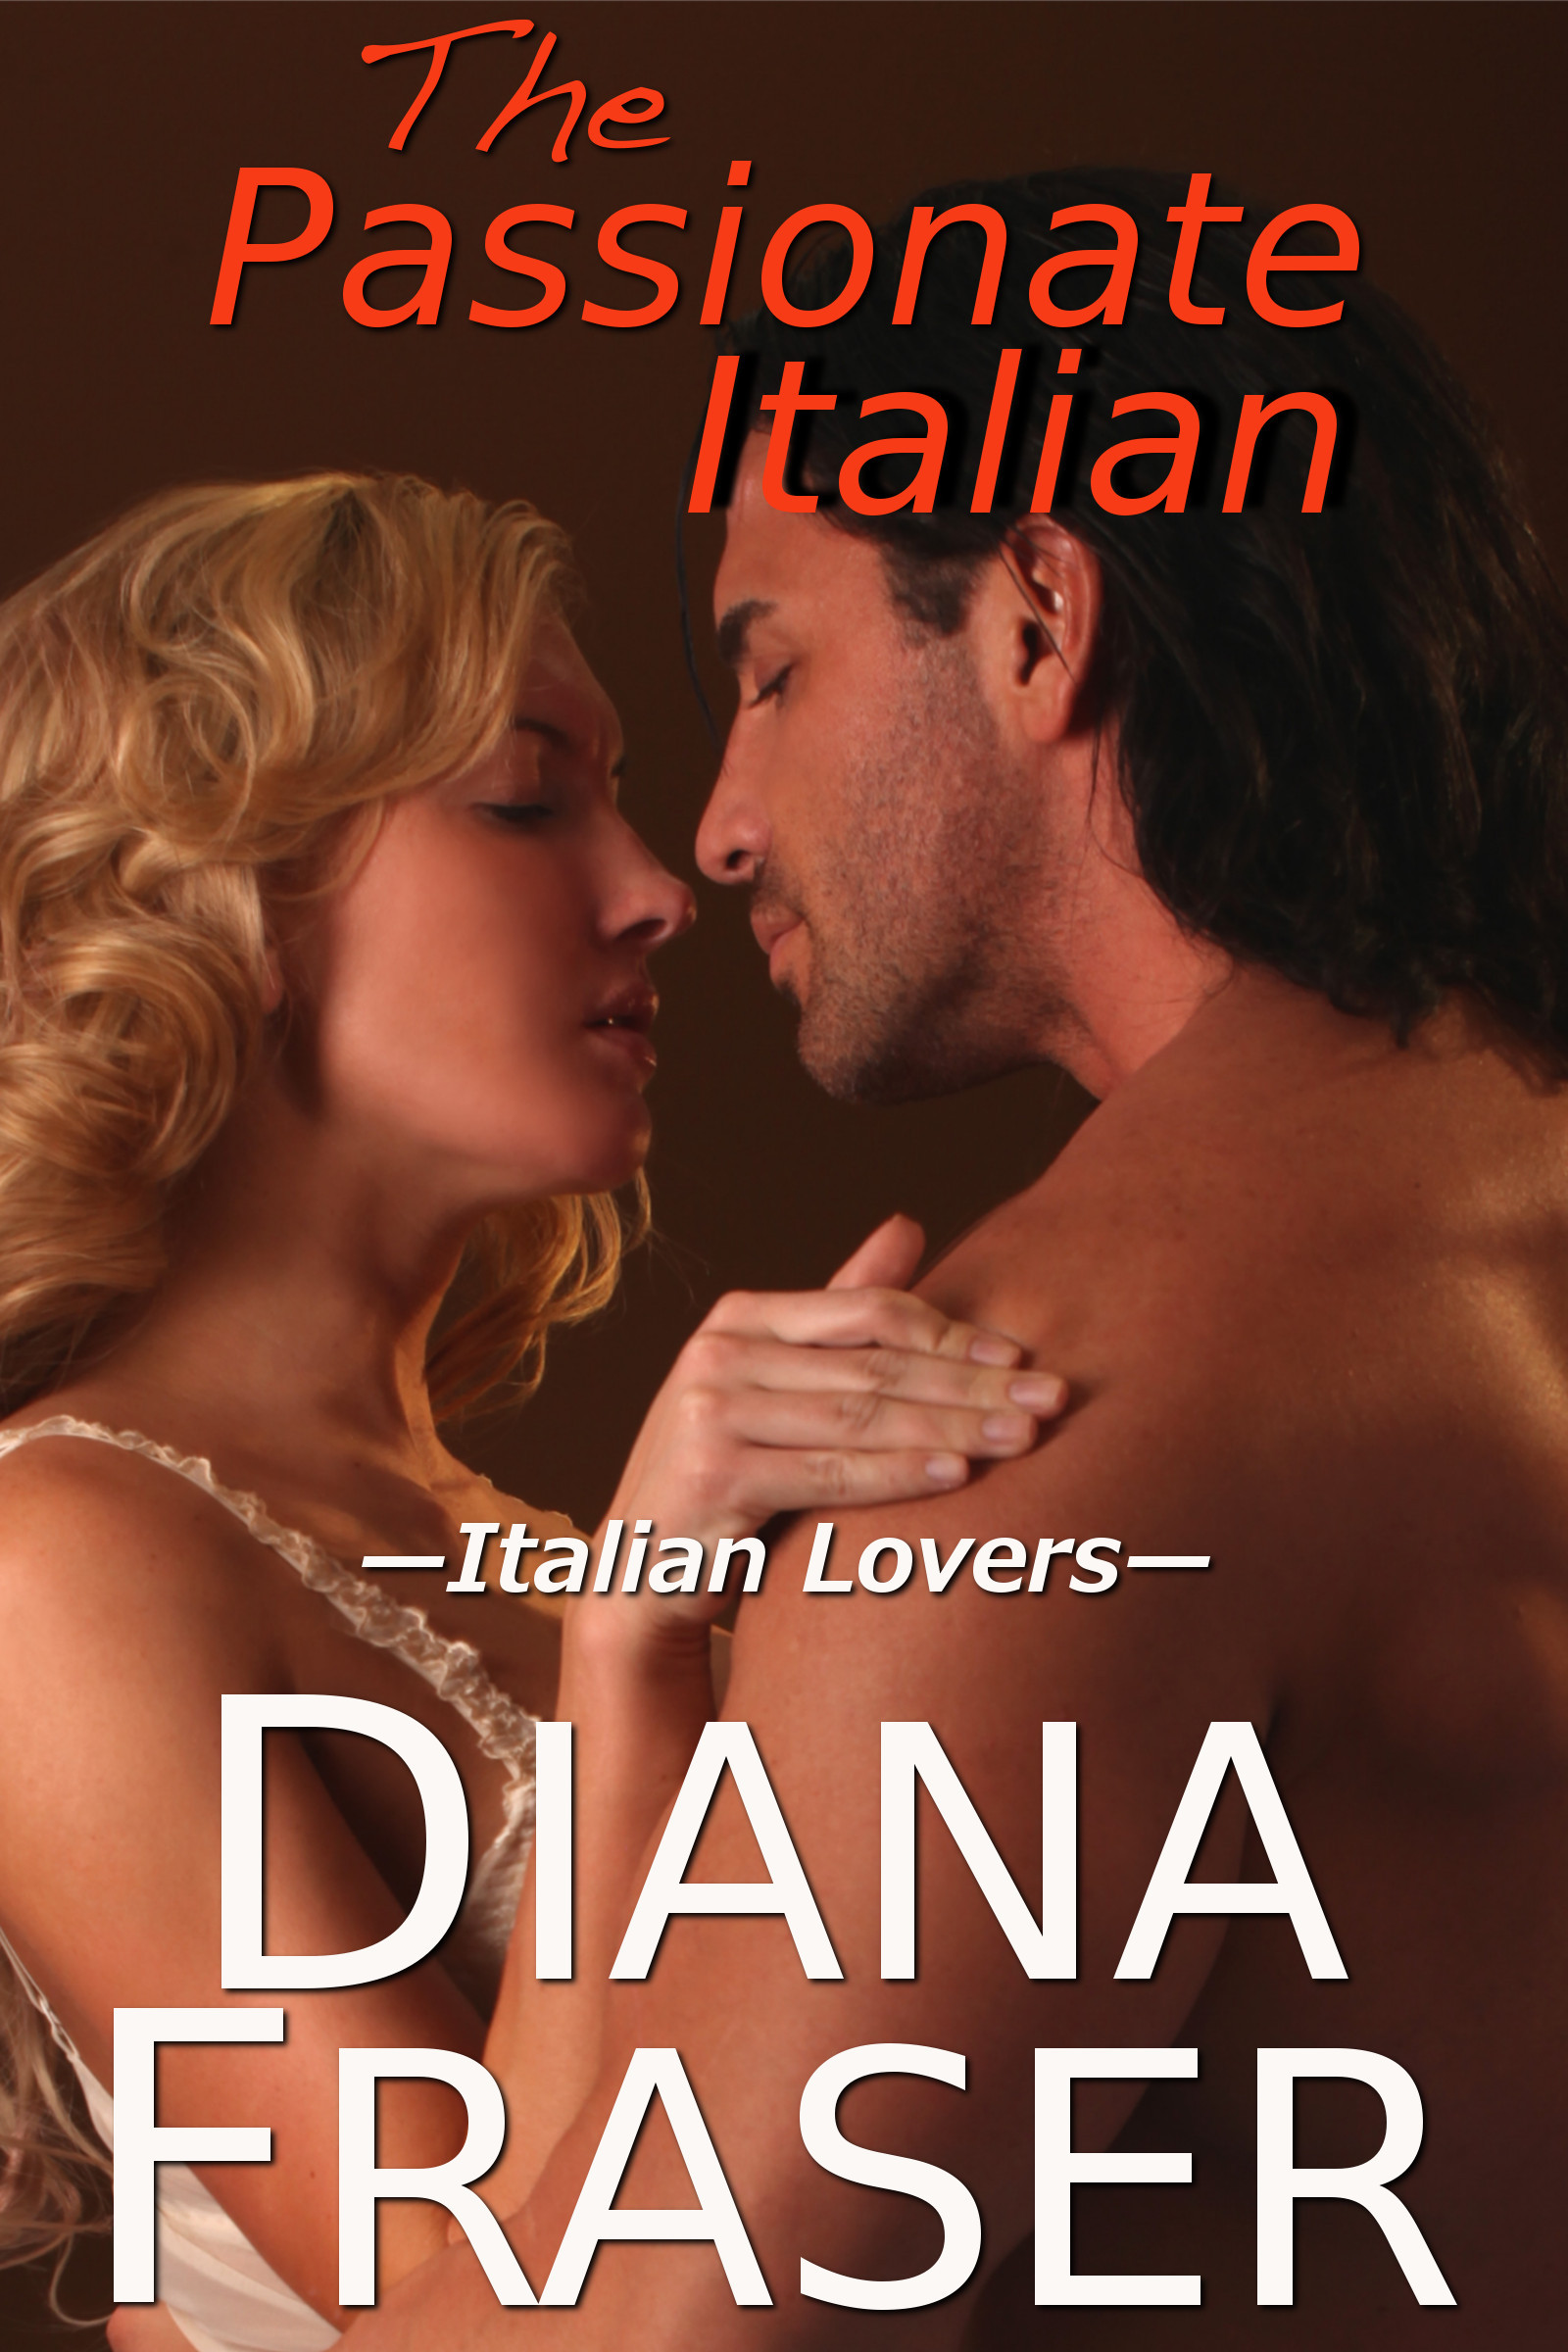 The Passionate Italian (Italian Lovers series)